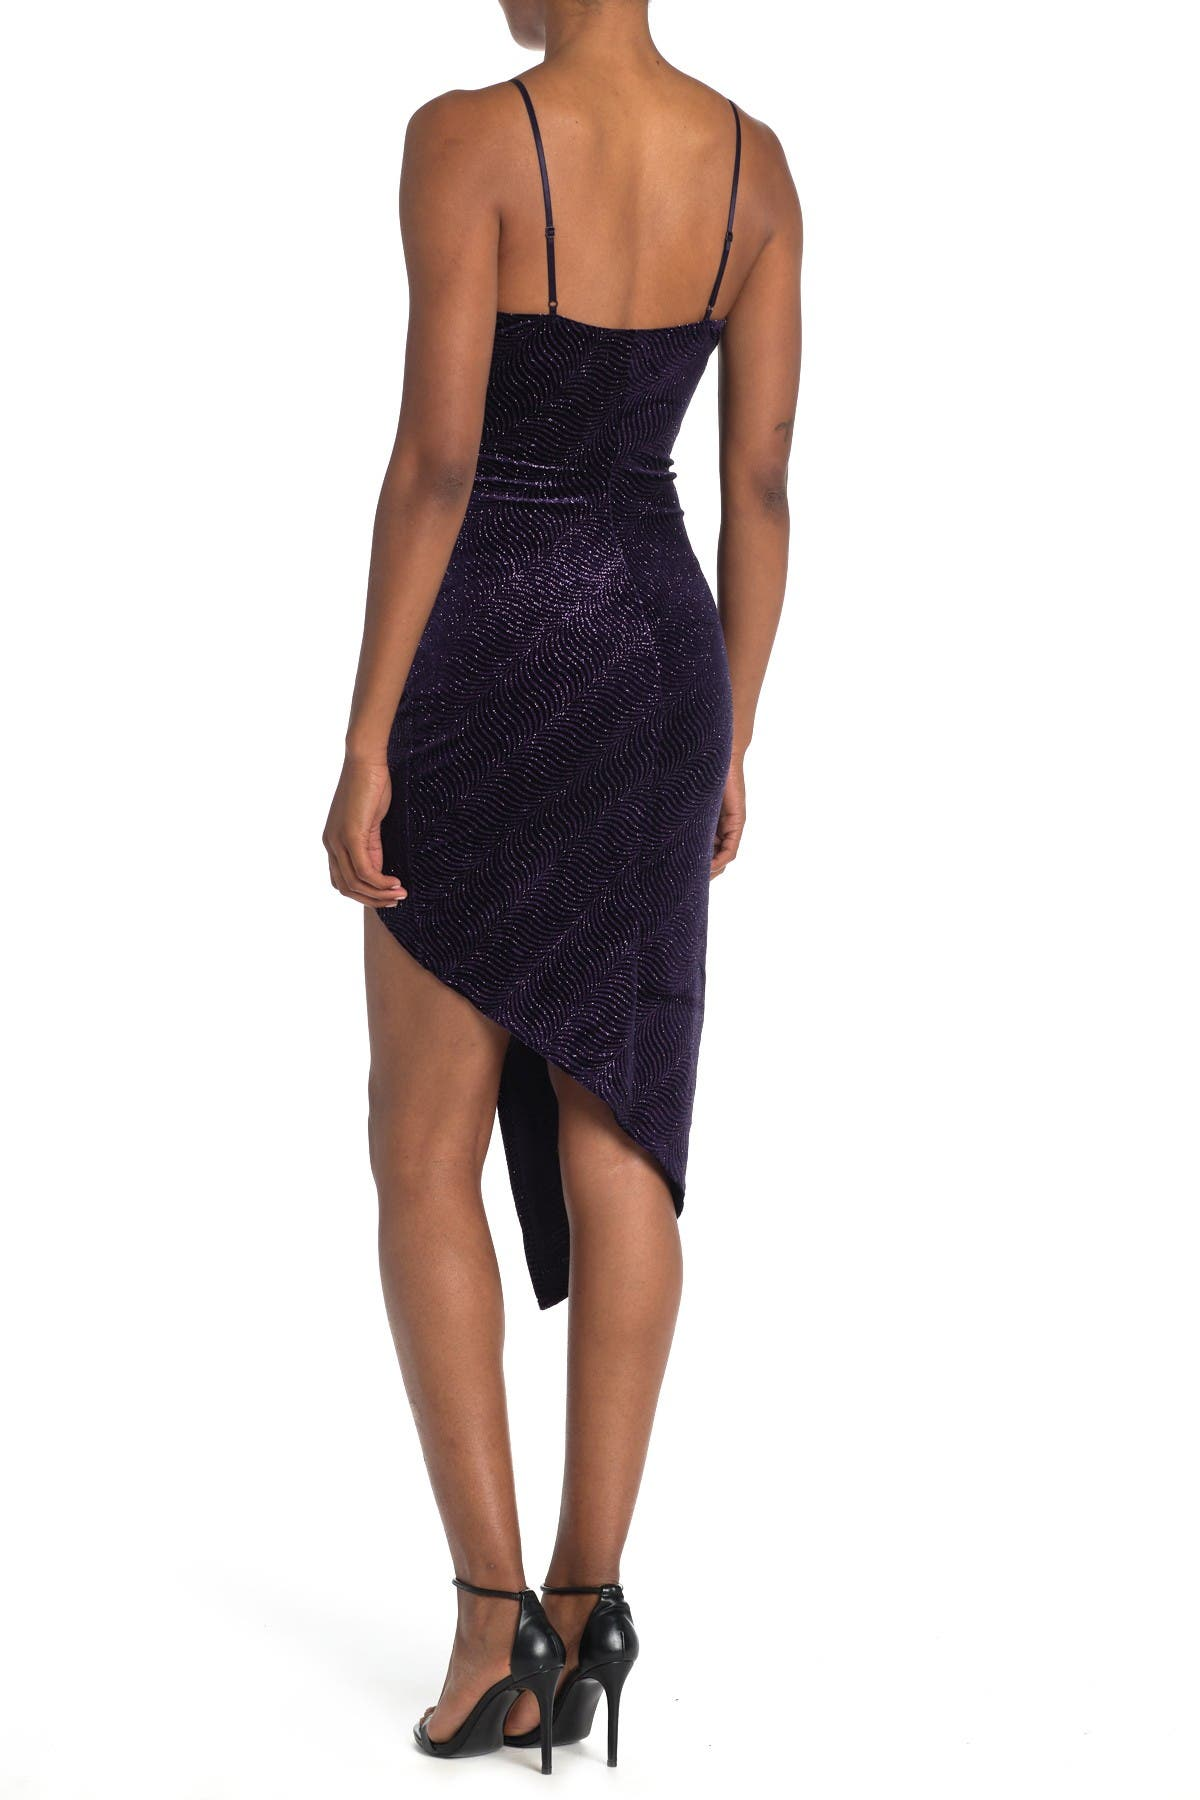 Love, Nickie Lew Glitter Velvet Ruched High/Low Bodycon Dress